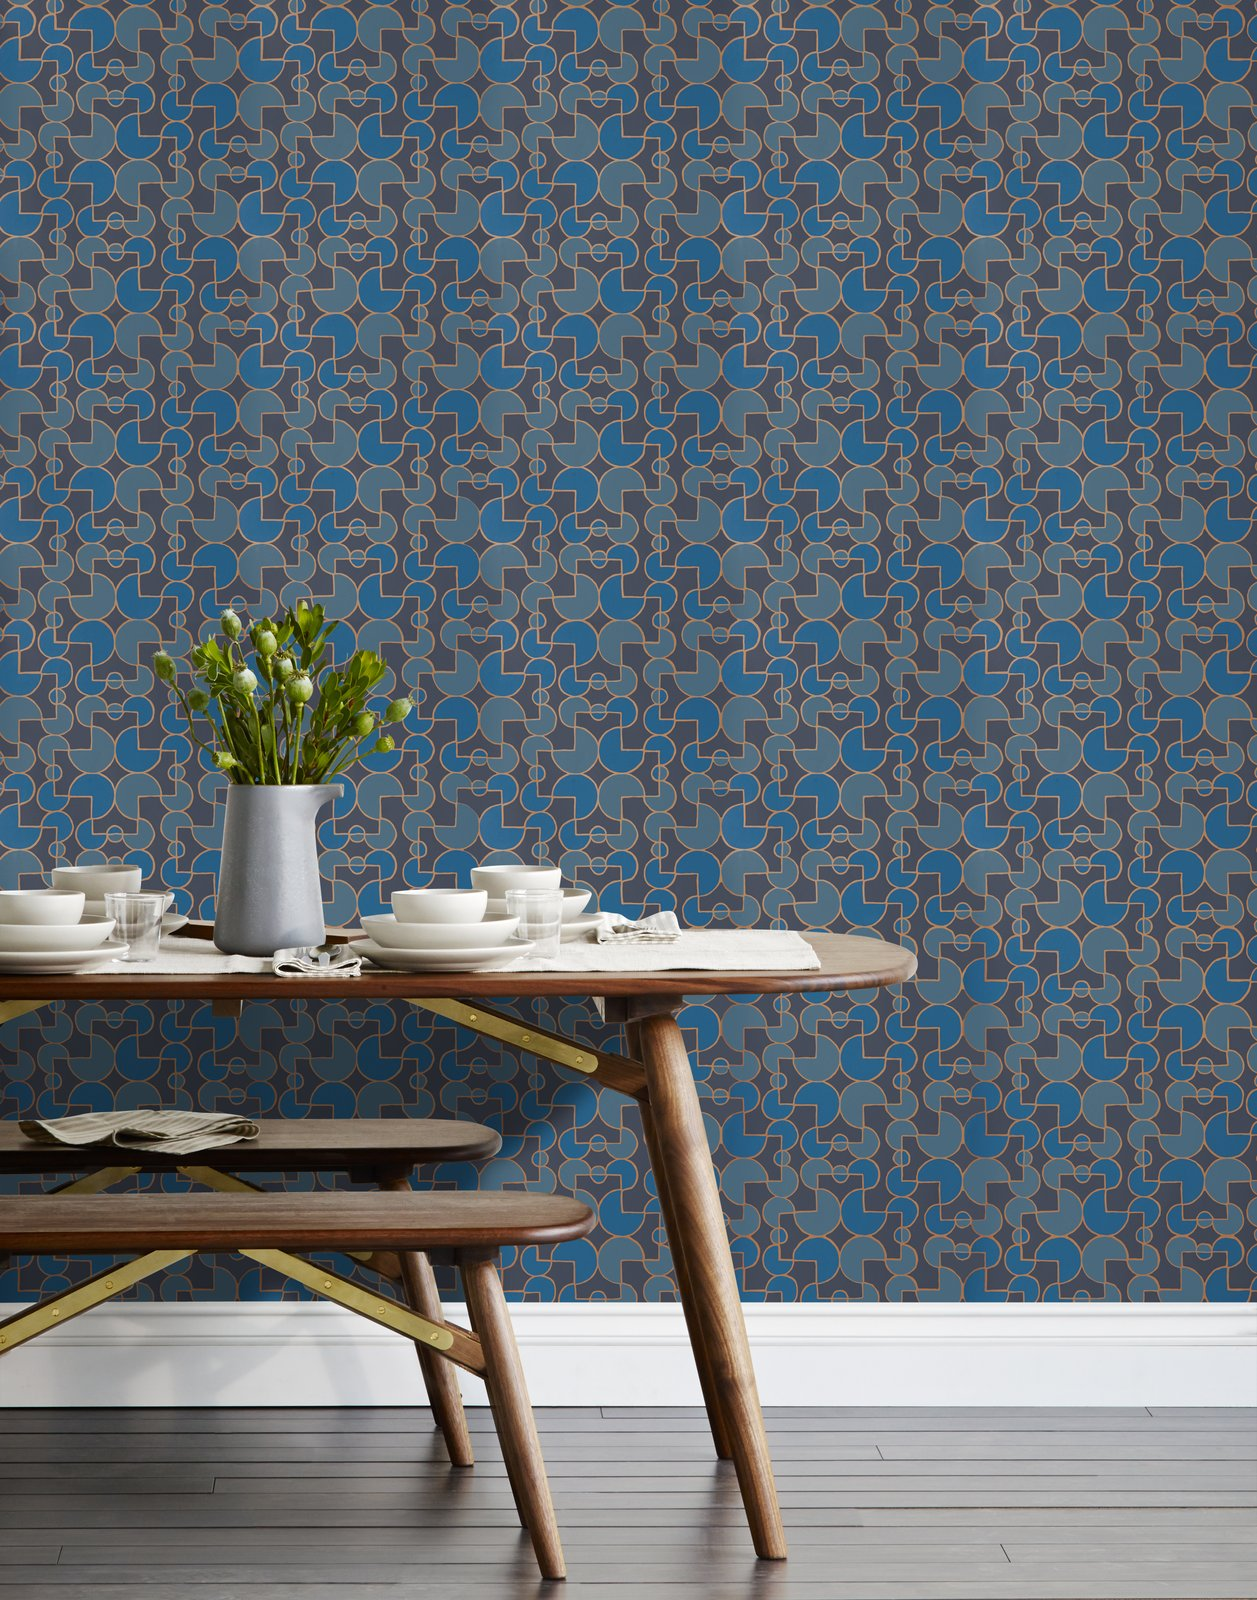 We partnered with Hygge & West to produce a collection of modern artisan wallpaper that's screenprinted by hand in Chicago, IL. Heath designed wallpaper that combines a clean graphical style with hand-drawn lines in a palette inspired by our glazes in four patterns in four colorways: Arcade, Quilt, Slice, and Strike.  Shop the collection here:  http://www.heathceramics.com/wallpaper   #heath #heathceramics #heathxhyggeandwest #wallpaper #color #handdrawnlines #navy #arcade  Photo 32 of 42 in Wallpaper That Fixes Walls